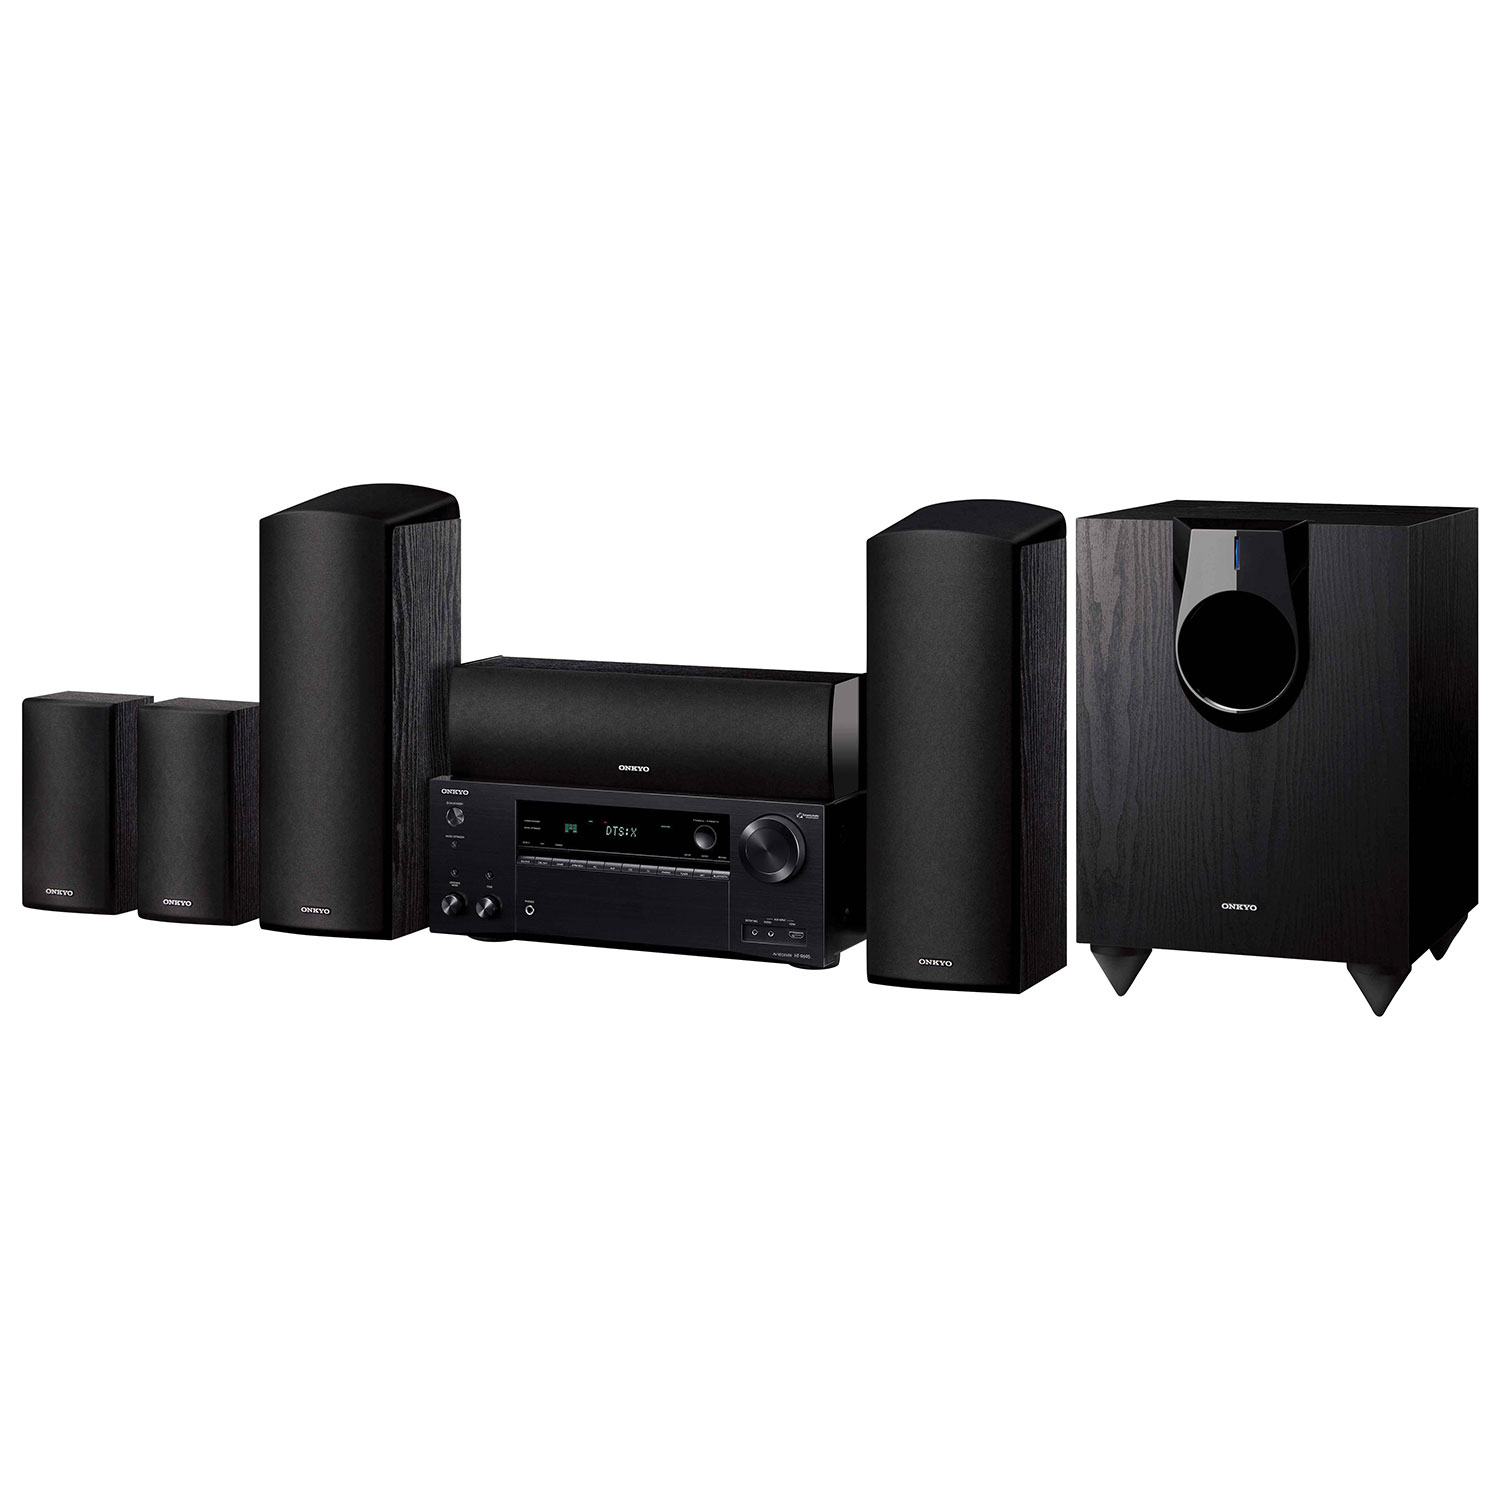 onkyo dolby atmos speakers. onkyo ht-s7800 5.1.2 channel dolby atmos home theatre system : receiver-based systems - best buy canada speakers s